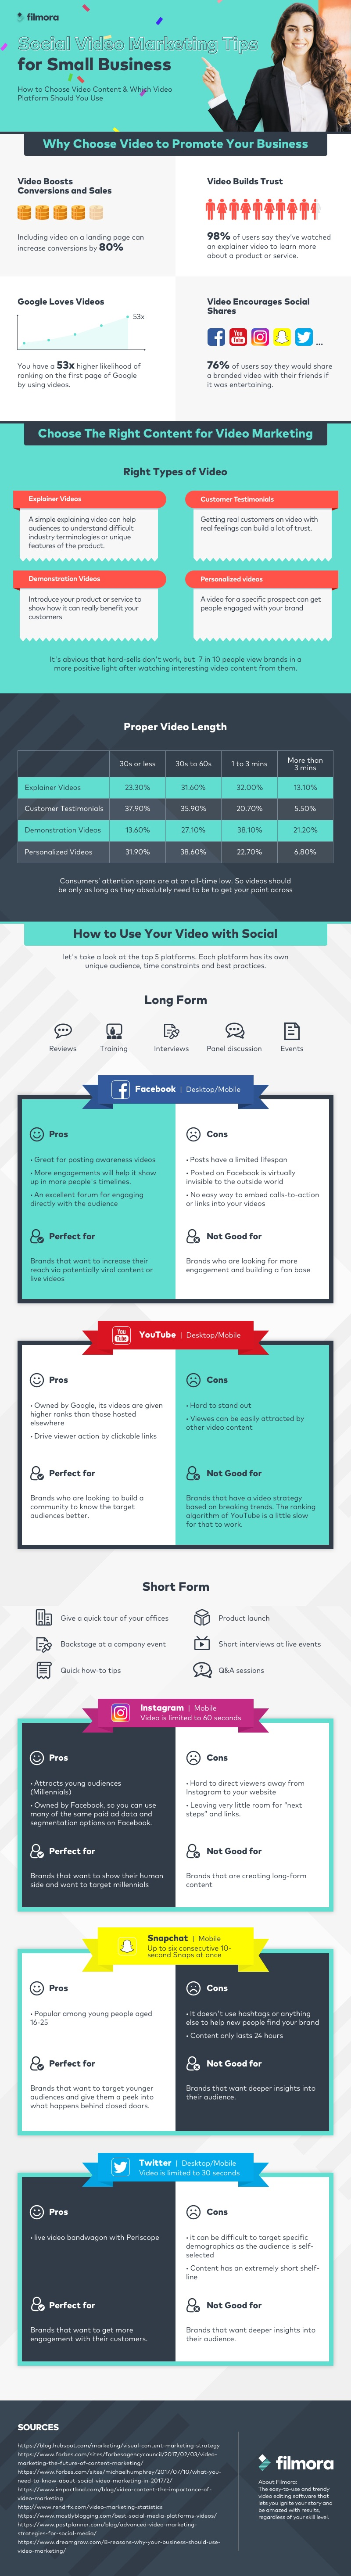 Tips for Video Marketing on Social Media (INFOGRAPHIC)